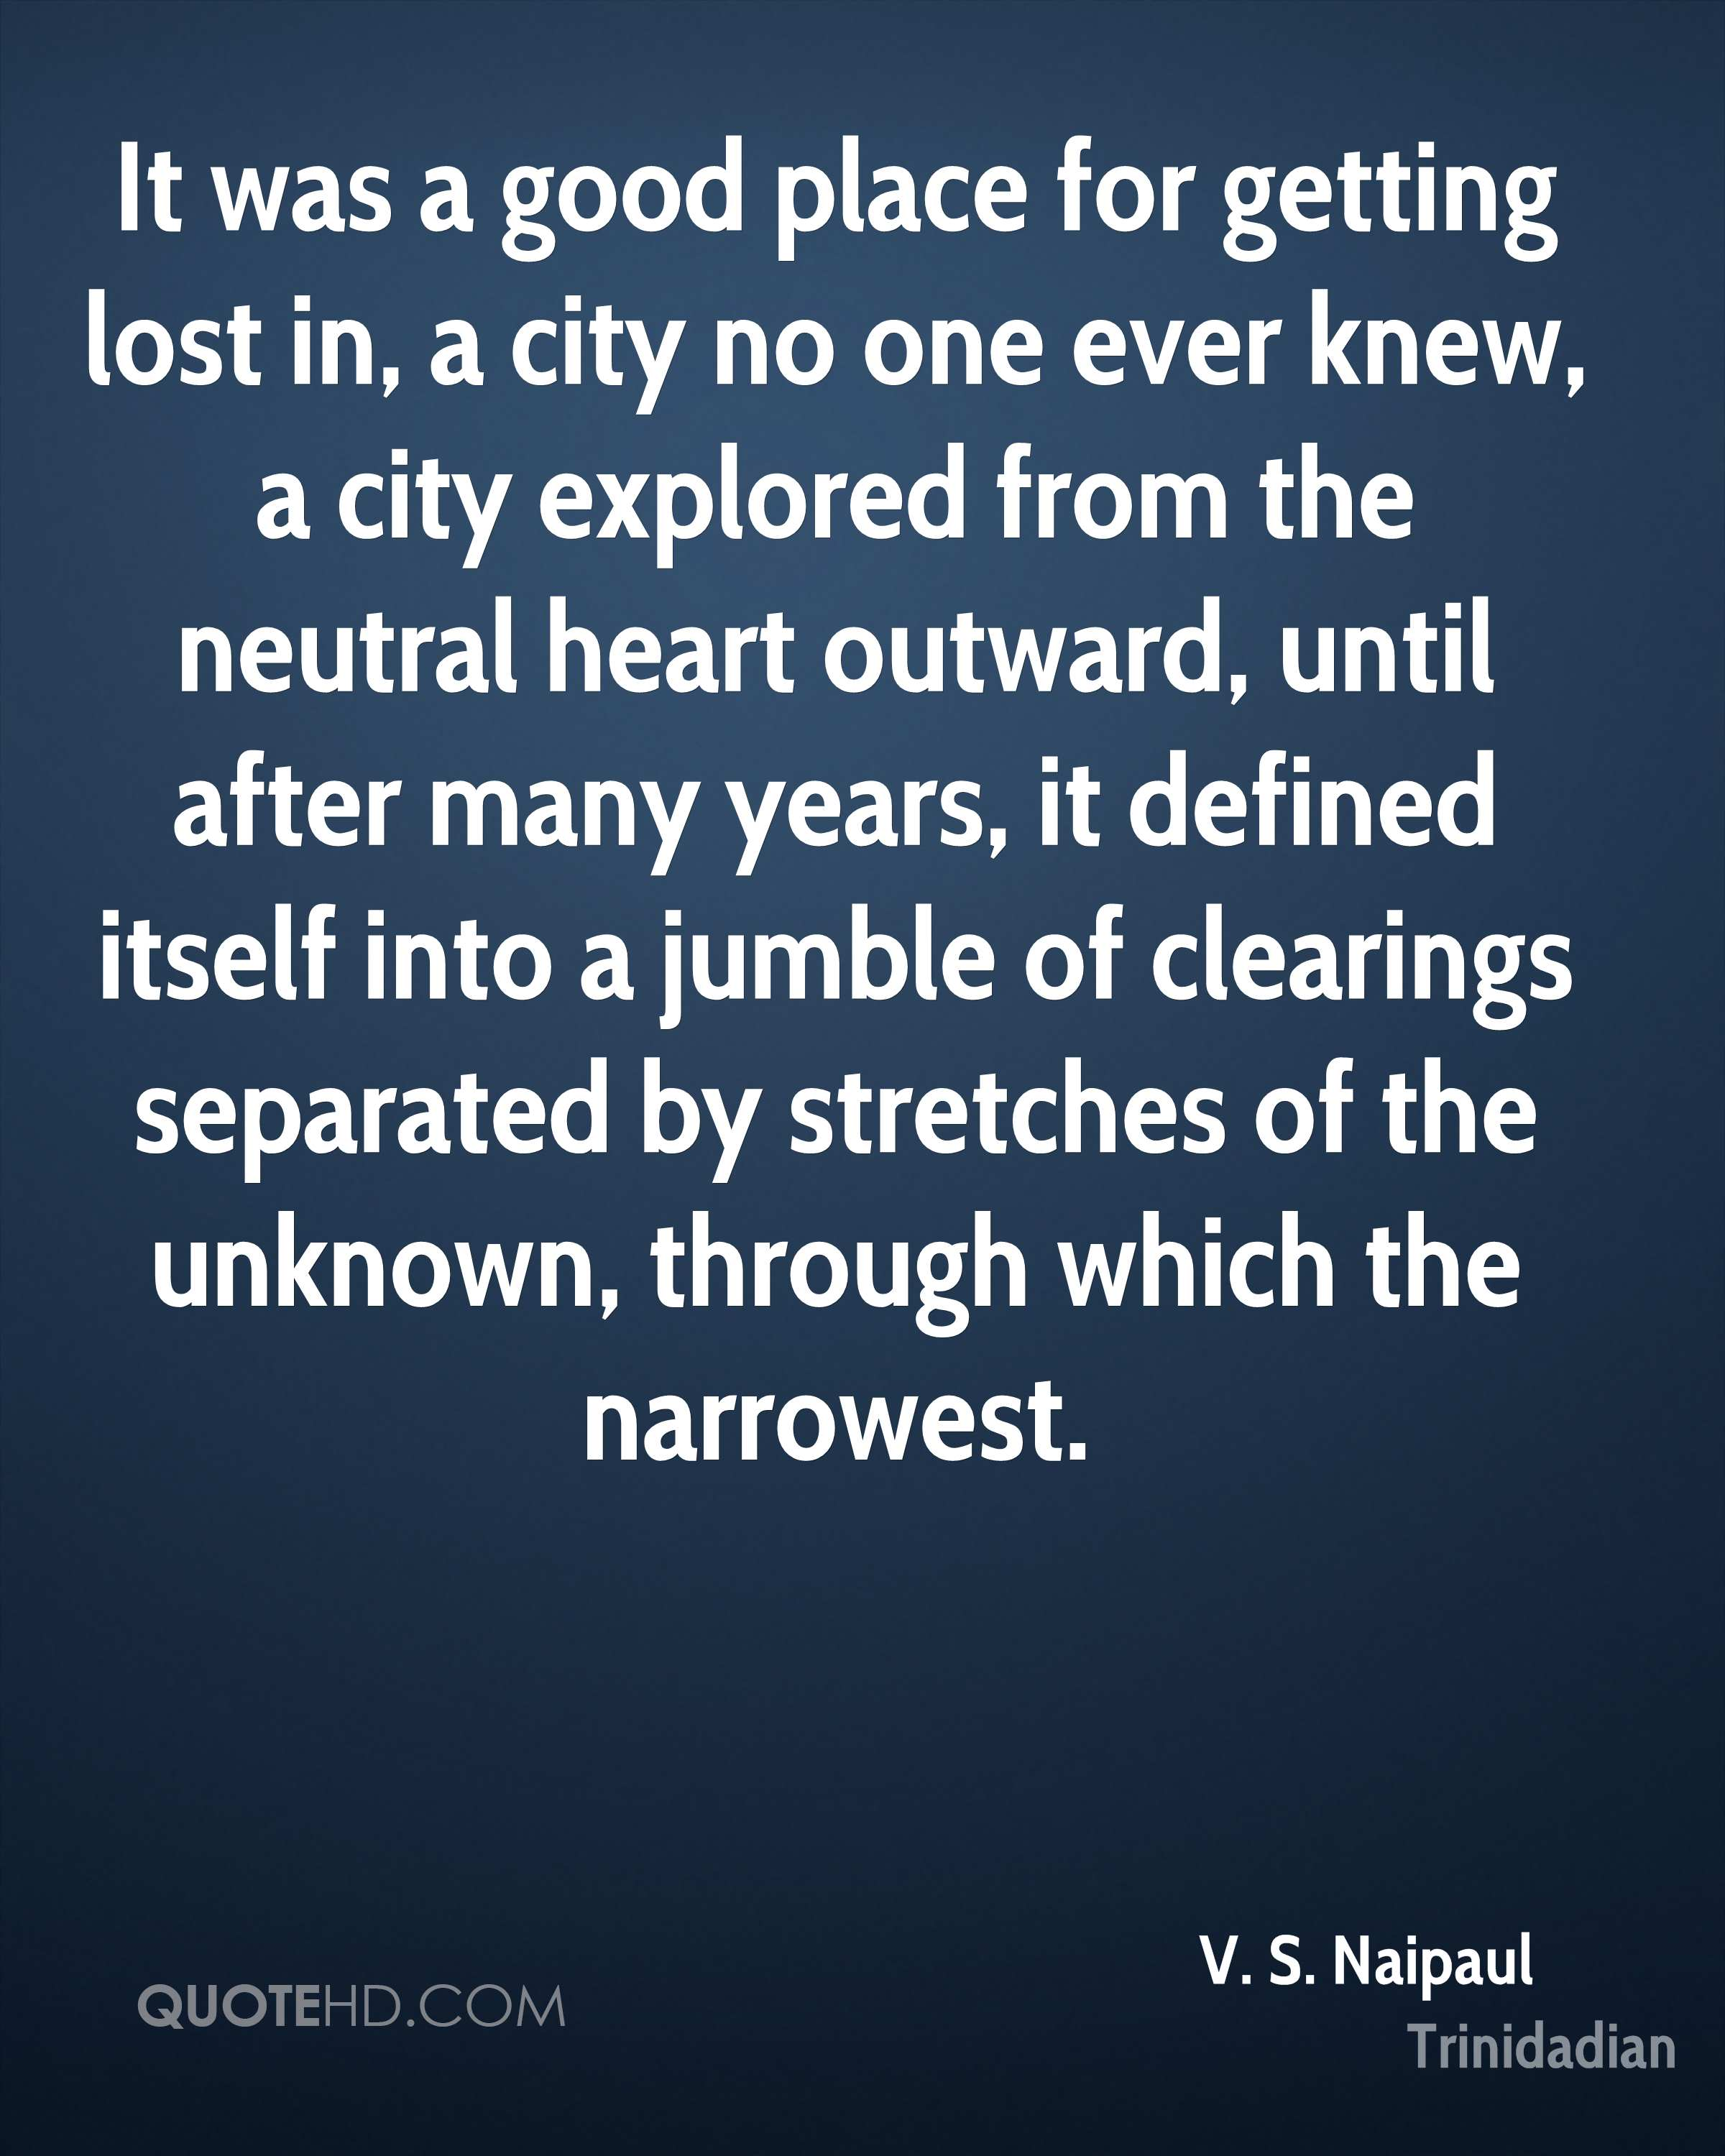 It was a good place for getting lost in, a city no one ever knew, a city explored from the neutral heart outward, until after many years, it defined itself into a jumble of clearings separated by stretches of the unknown, through which the narrowest.